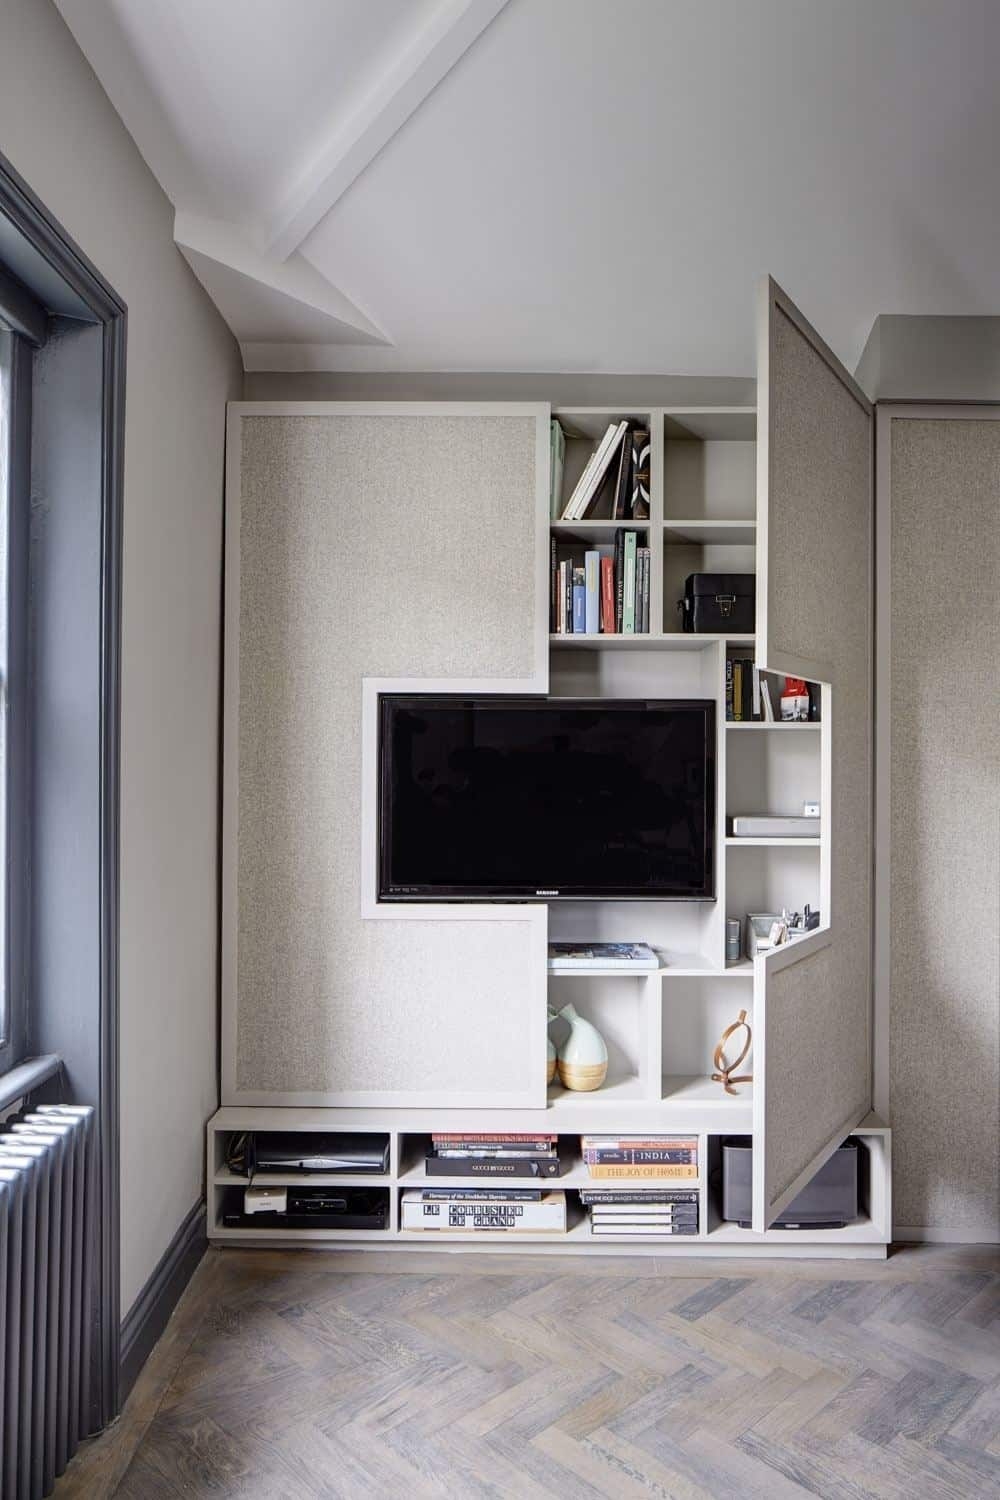 High style, low-budget in this 750 square foot English flat